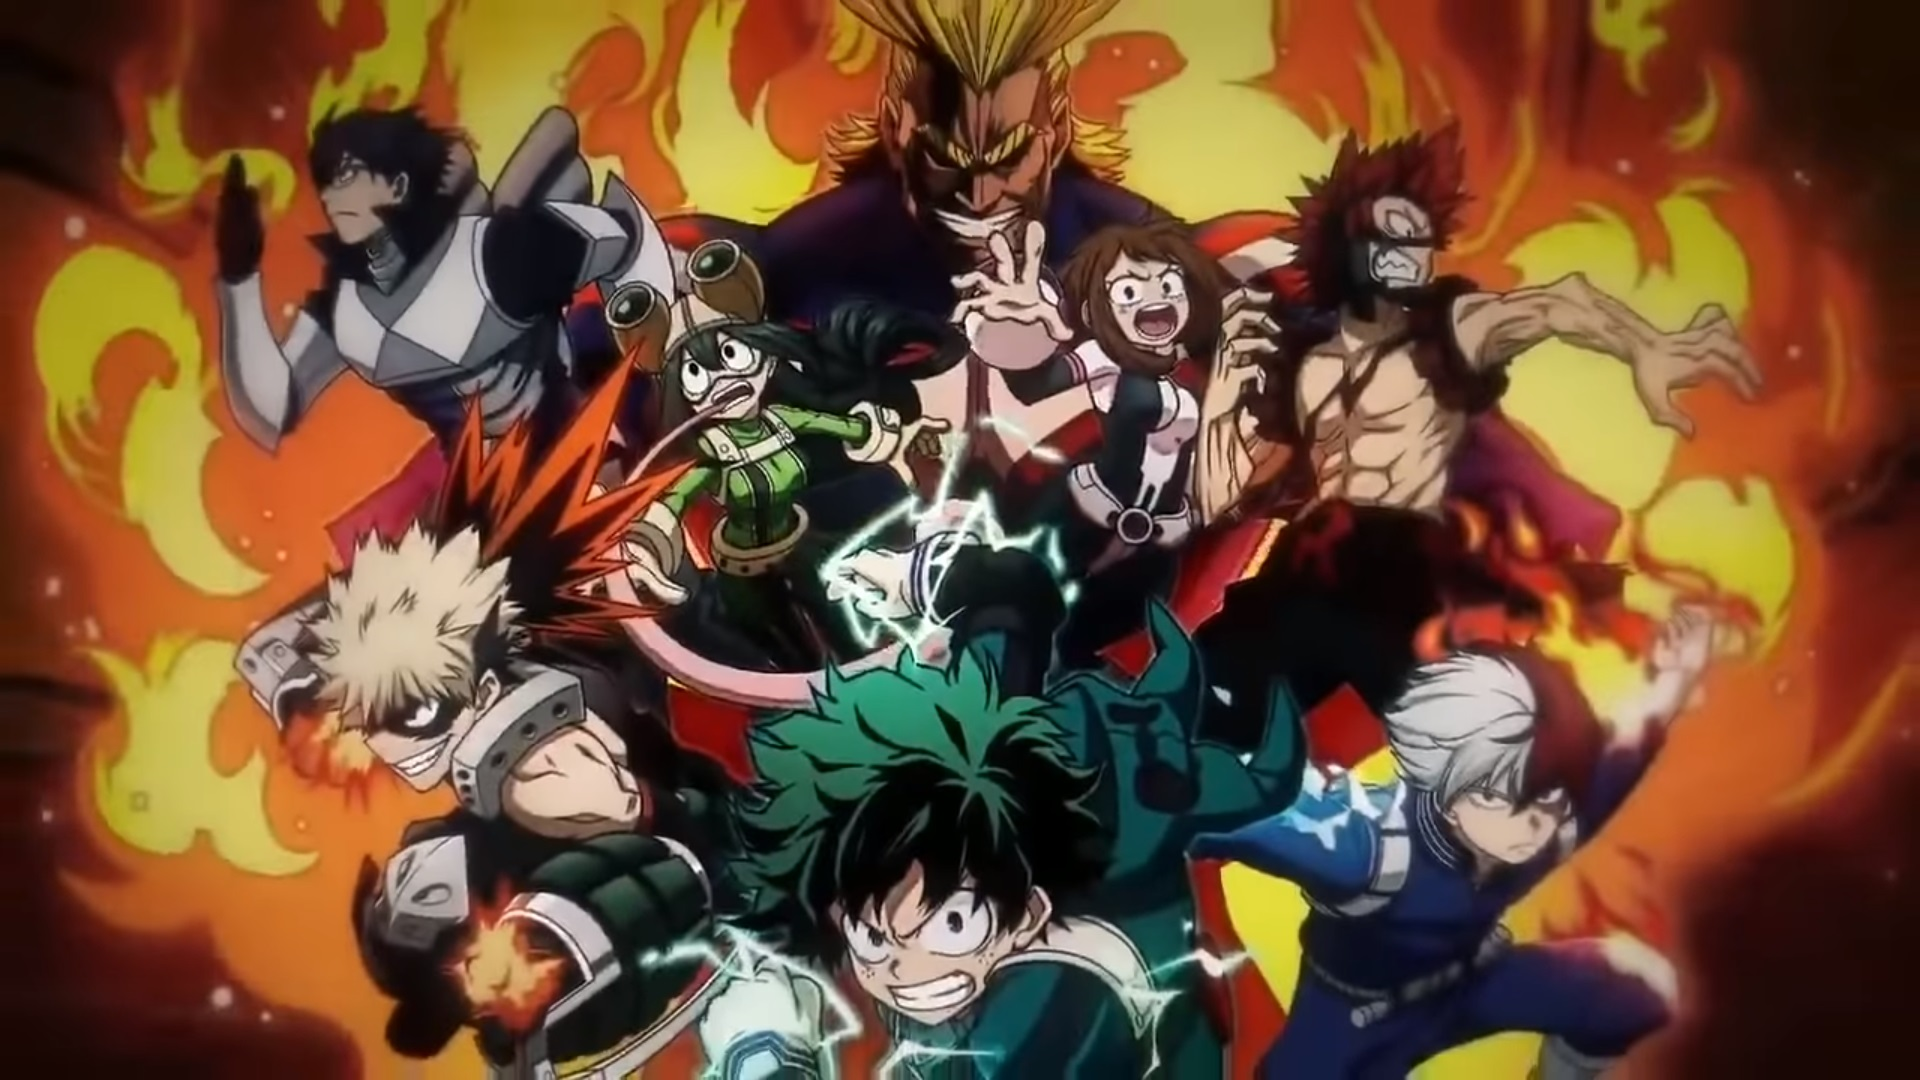 Cool features, hd my hero academia anime wallpaper backgrounds. What do you need to know about My Hero Academia?   Michibiku